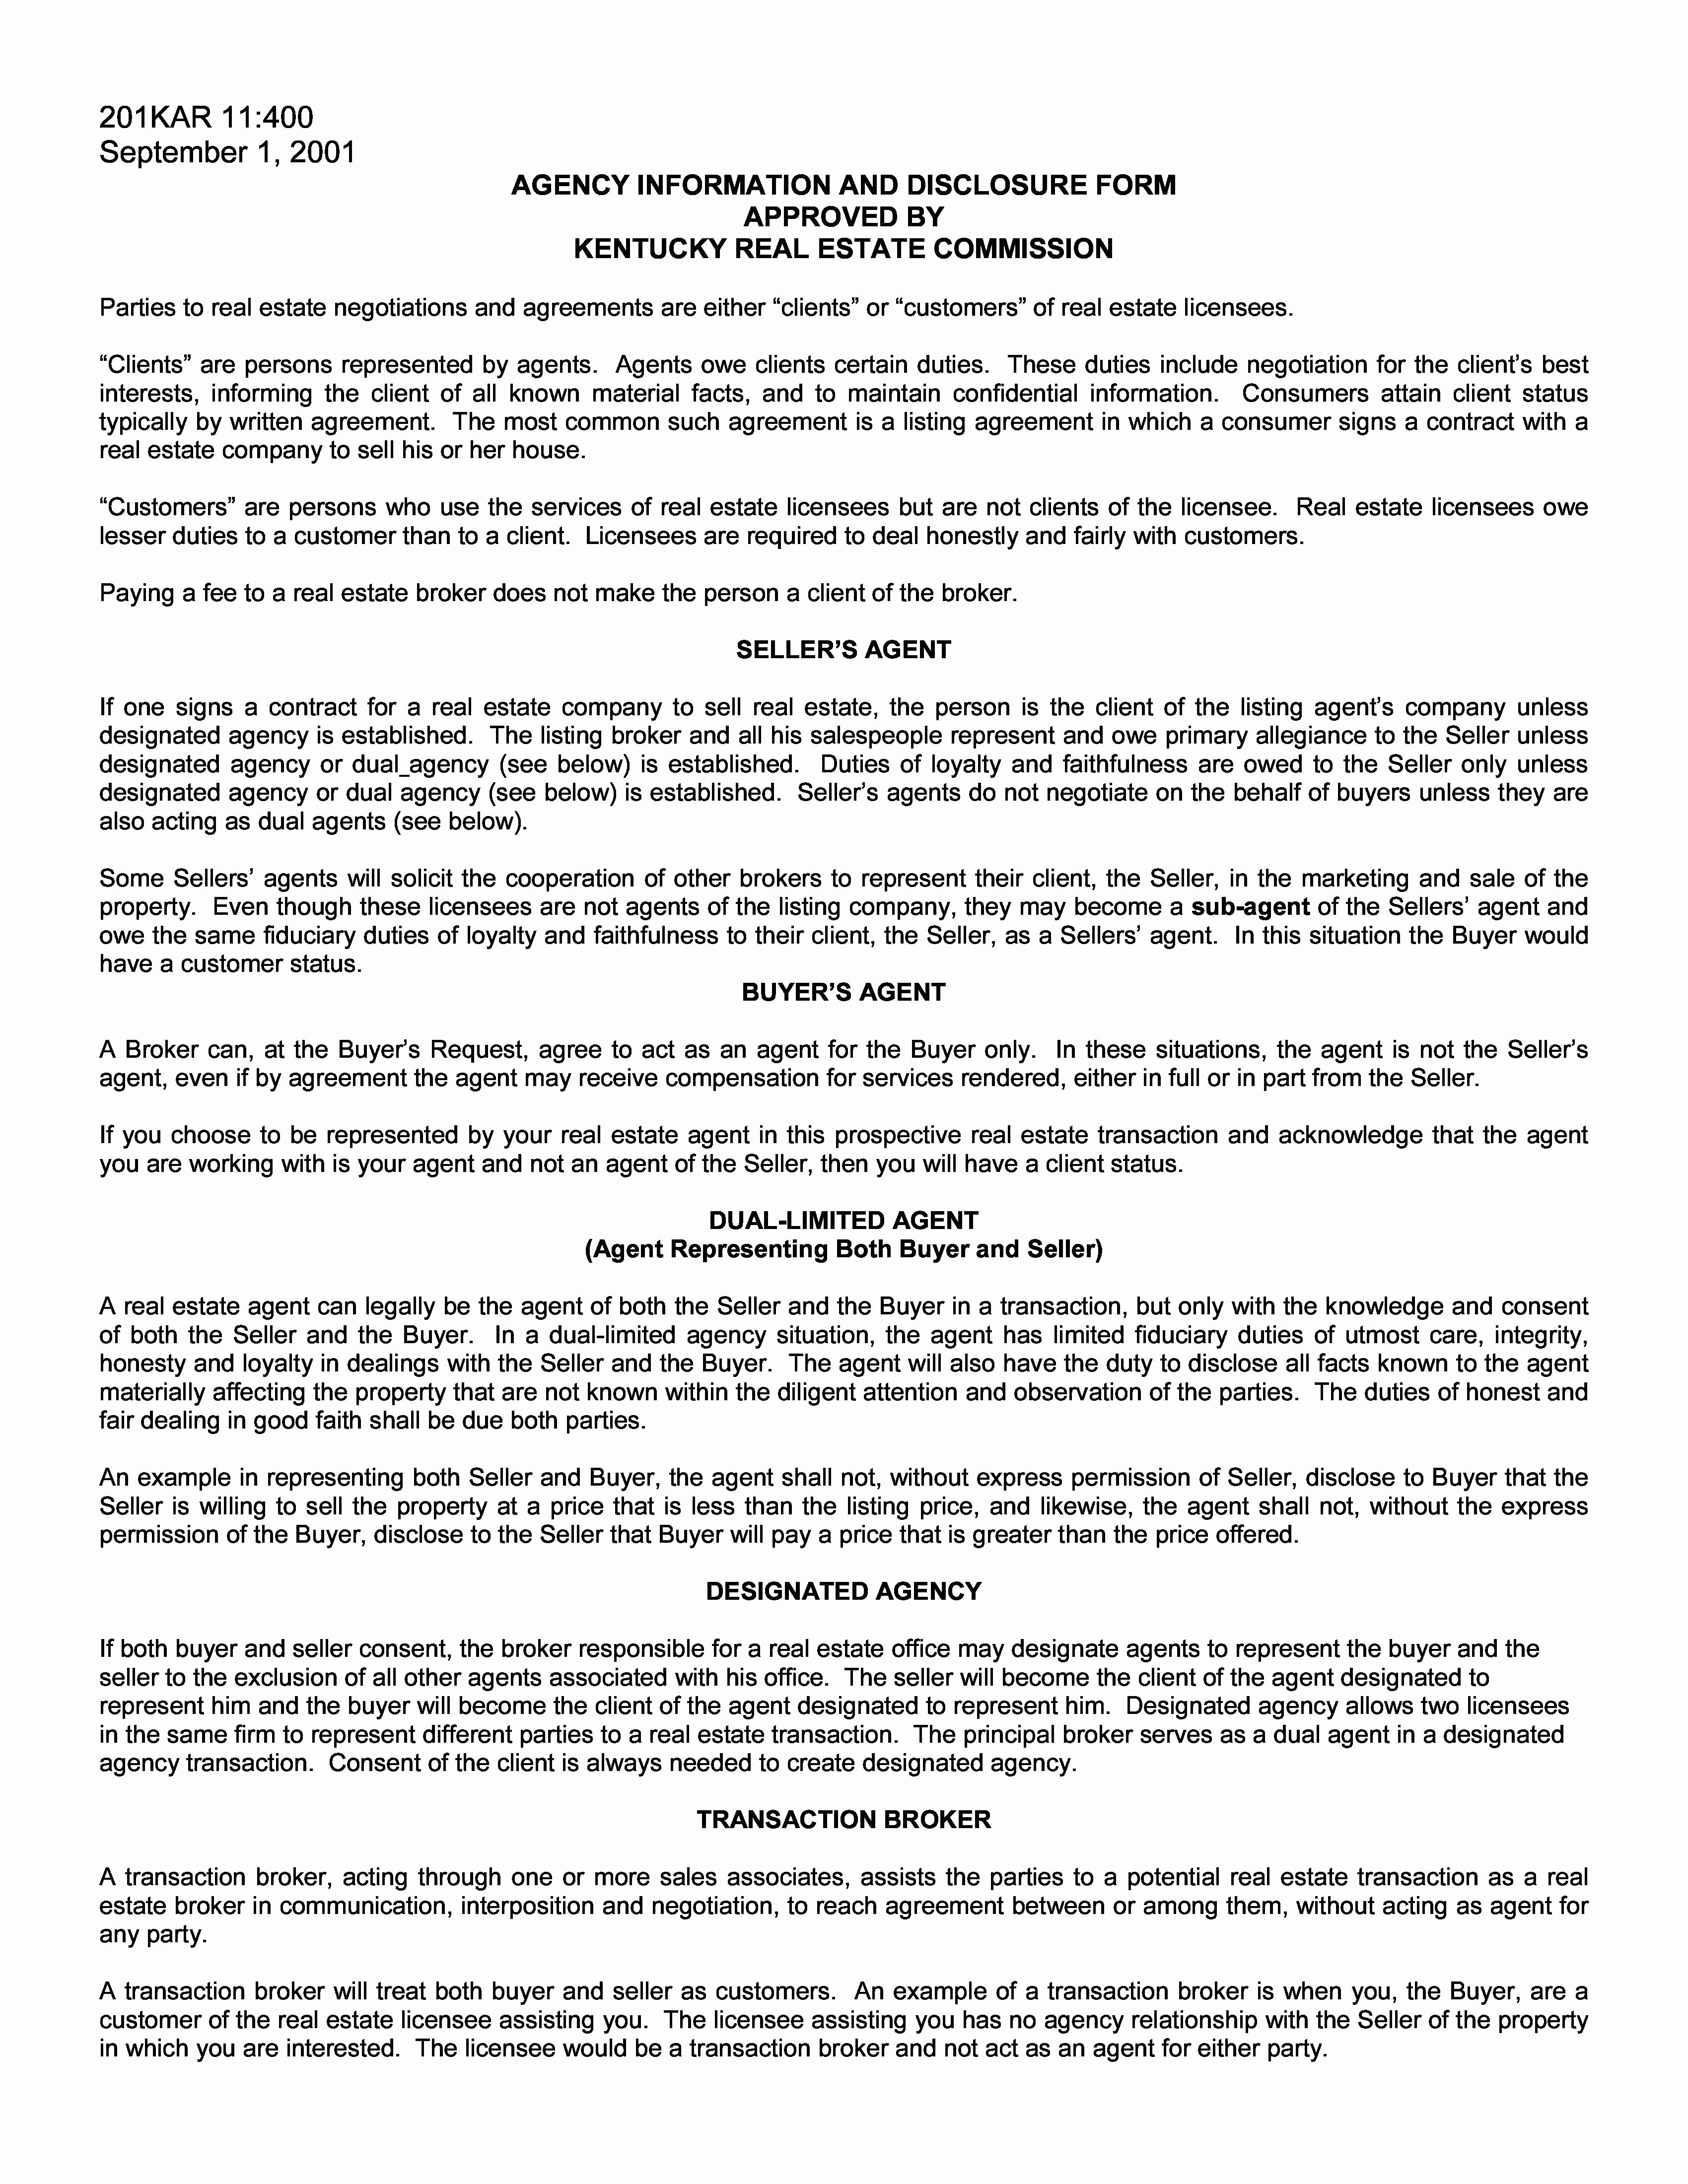 Template Broker Mission Agreement Template